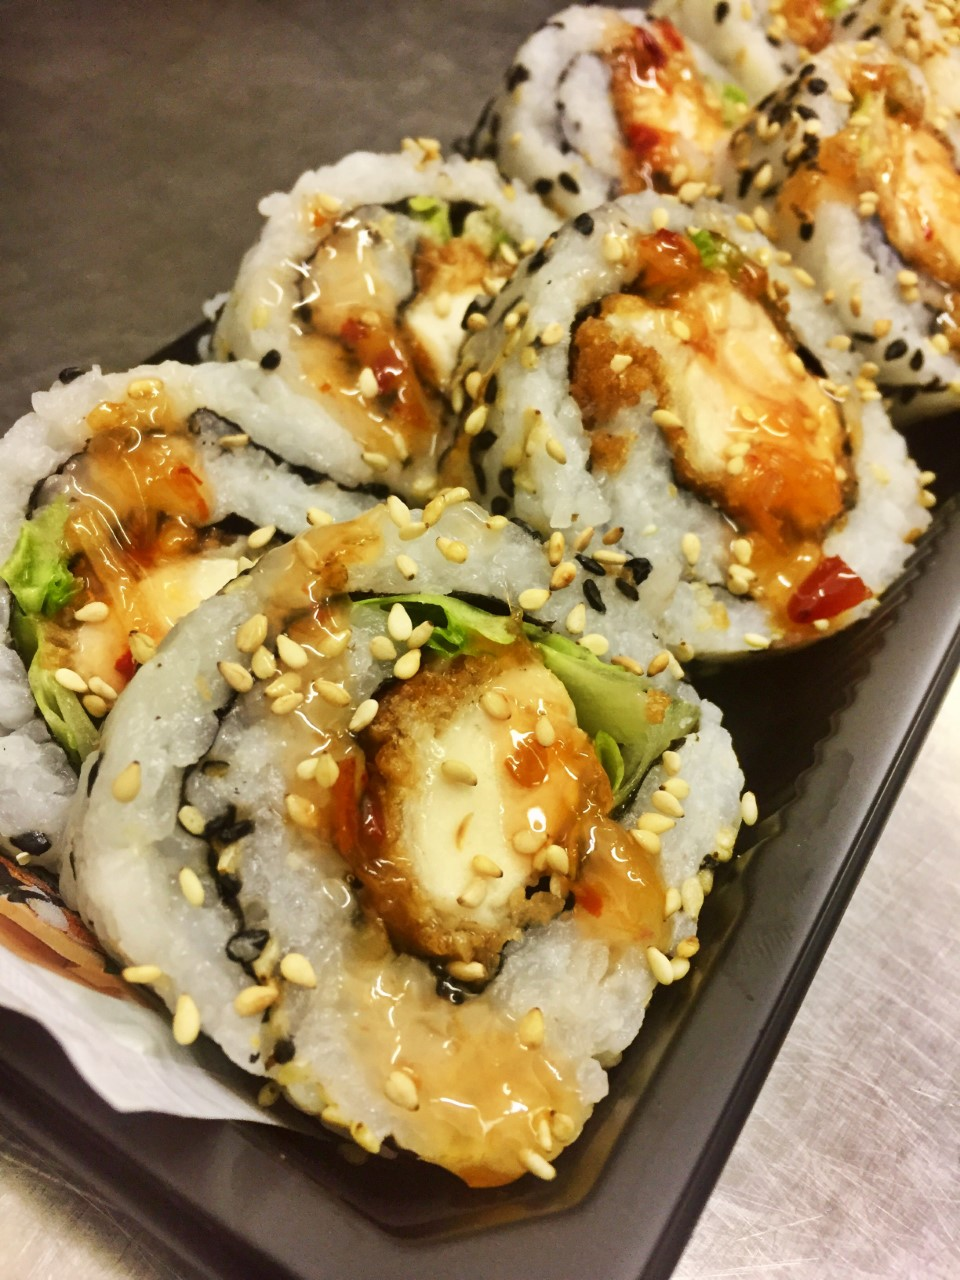 Chicken Katsu Roll with Sweet Chili - £6